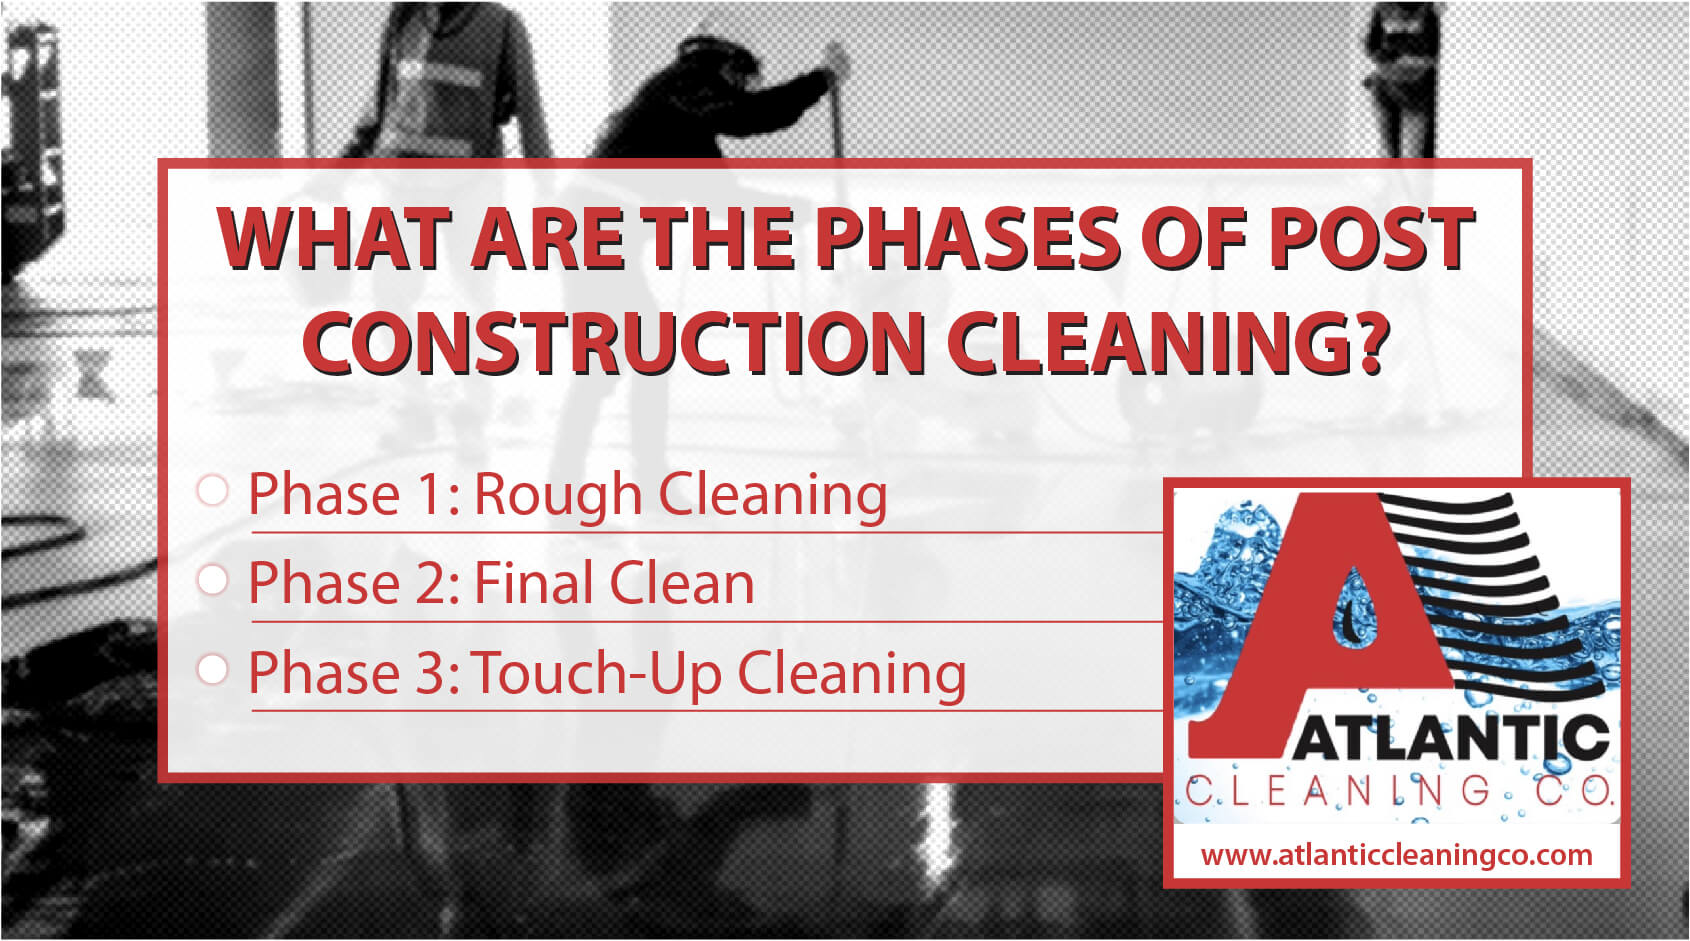 Phases Of Post Construction Cleaning